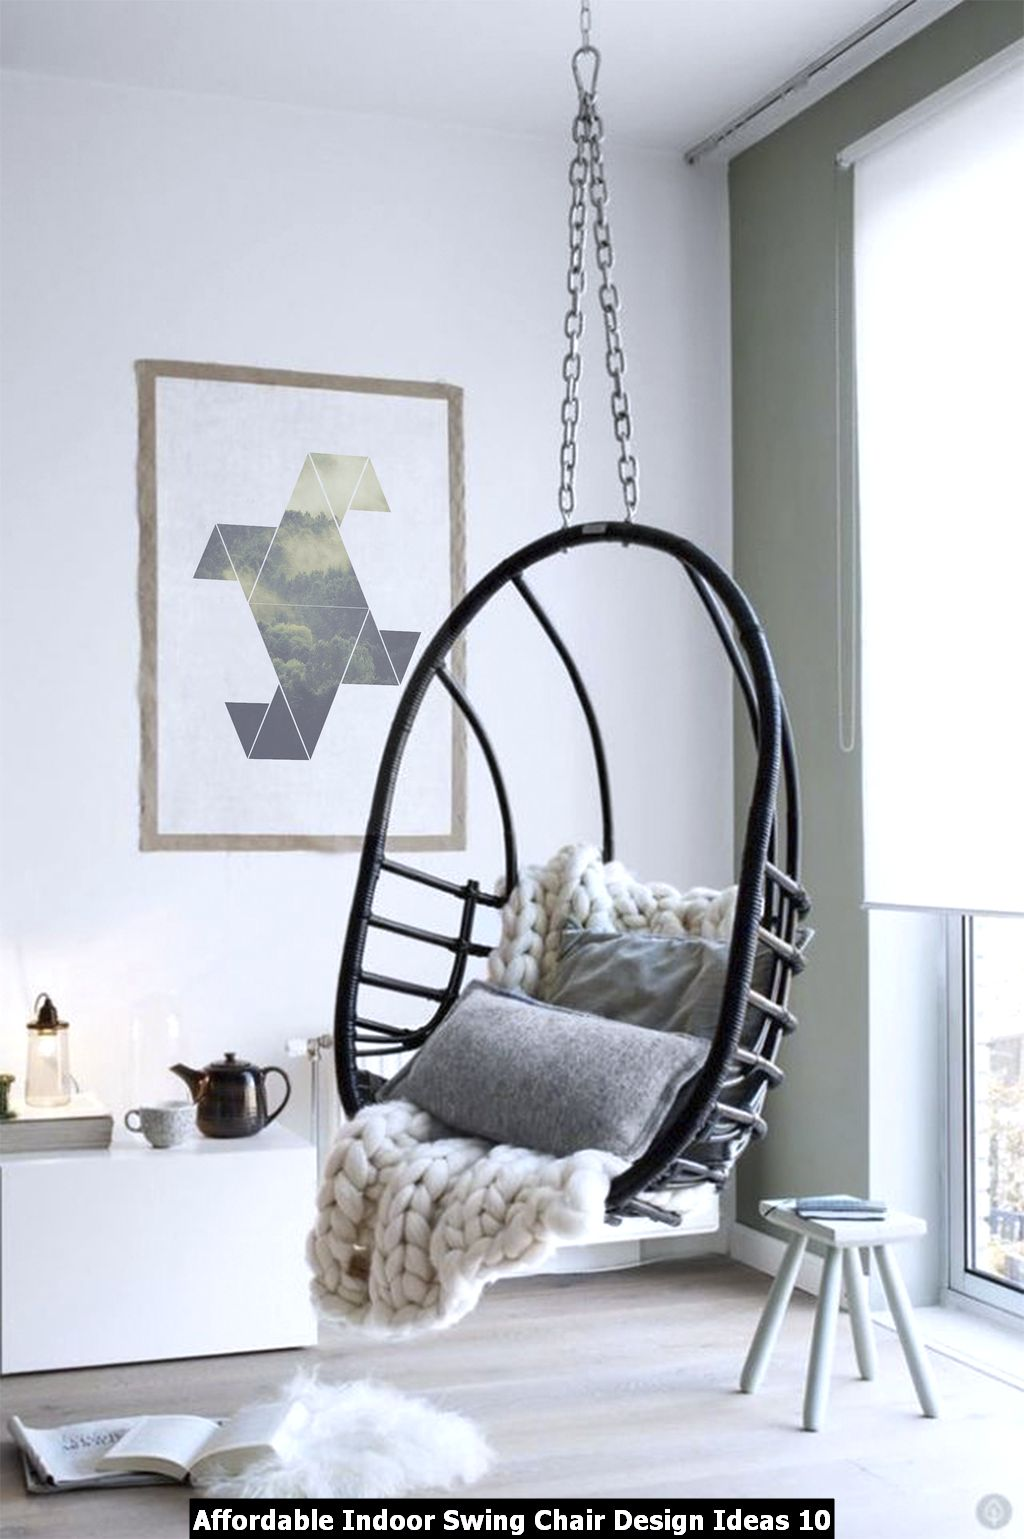 Affordable Indoor Swing Chair Design Ideas 10